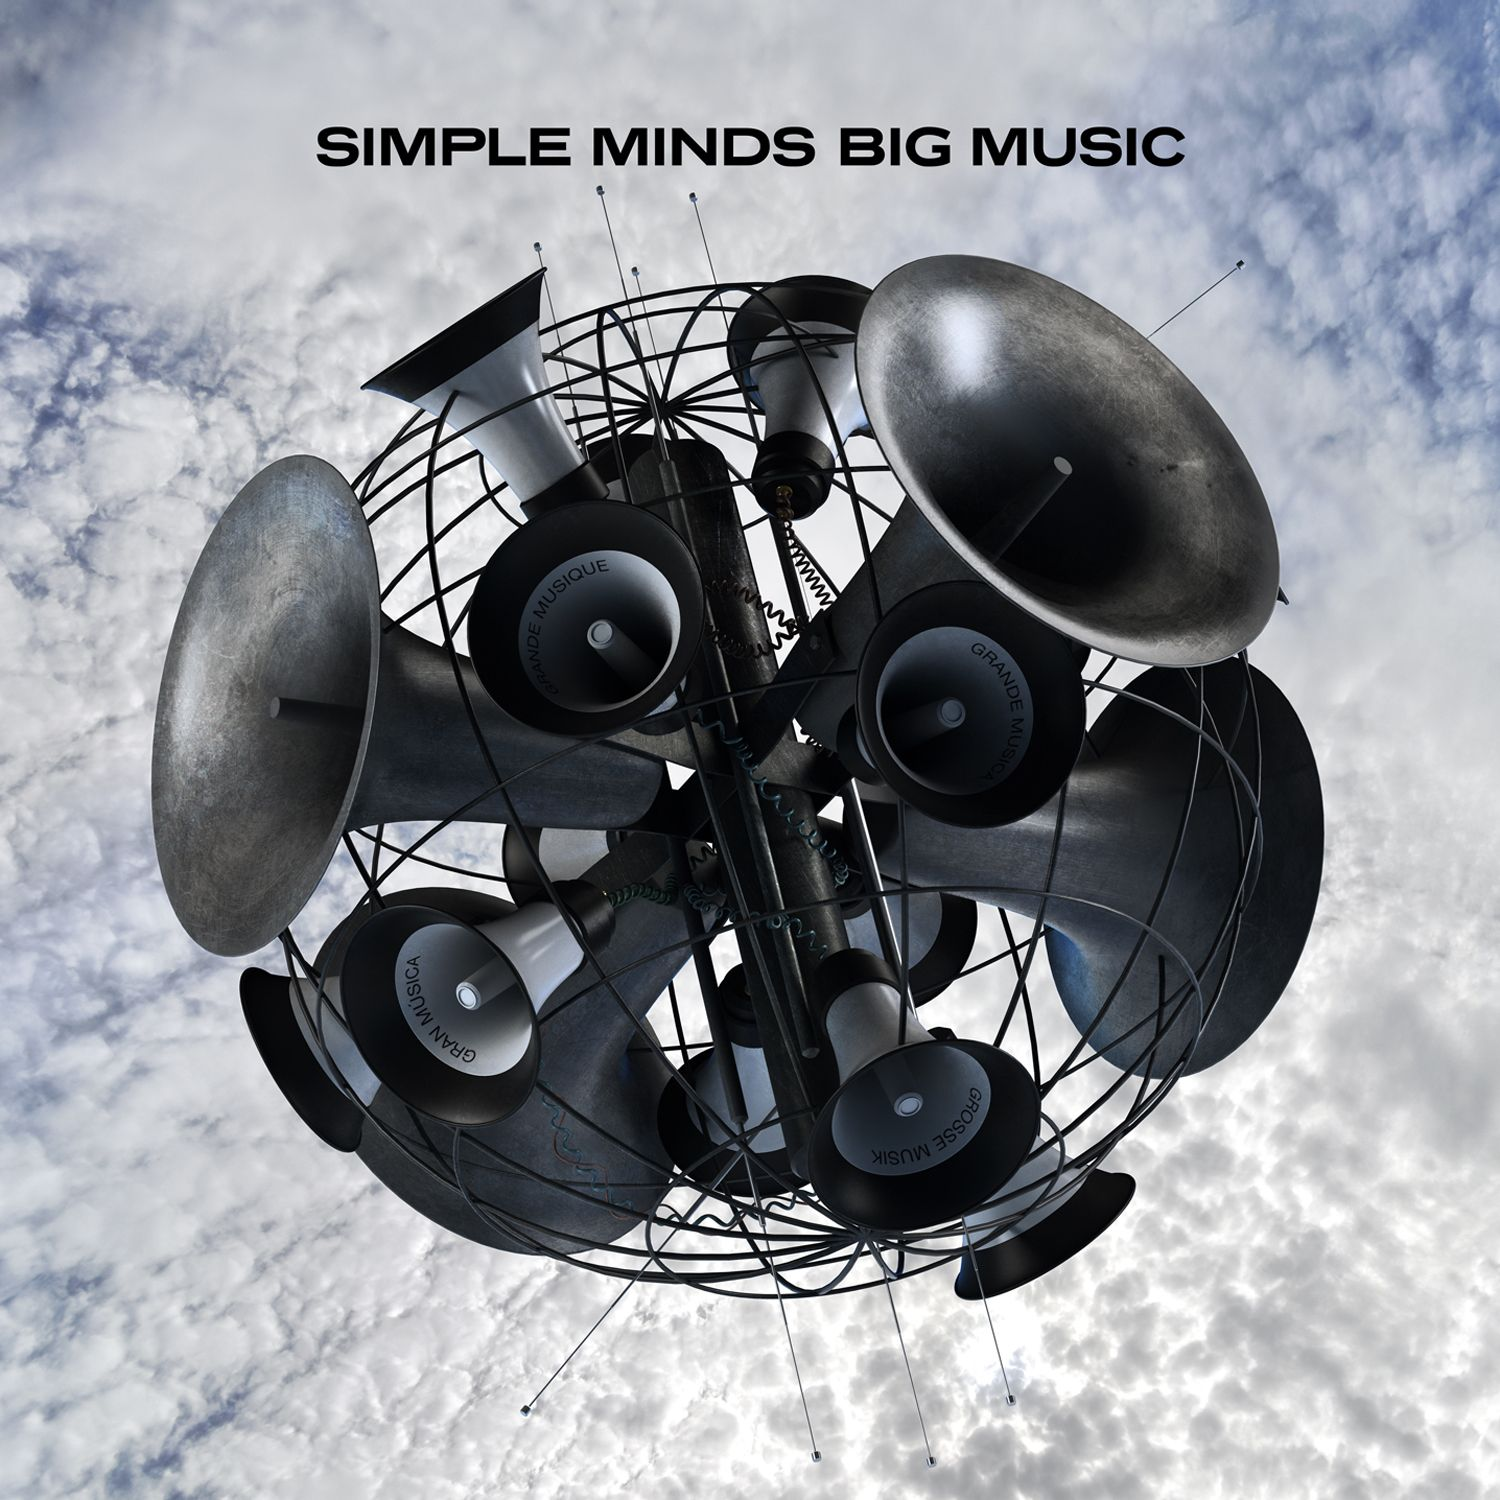 Simple Minds - Big Music album cover